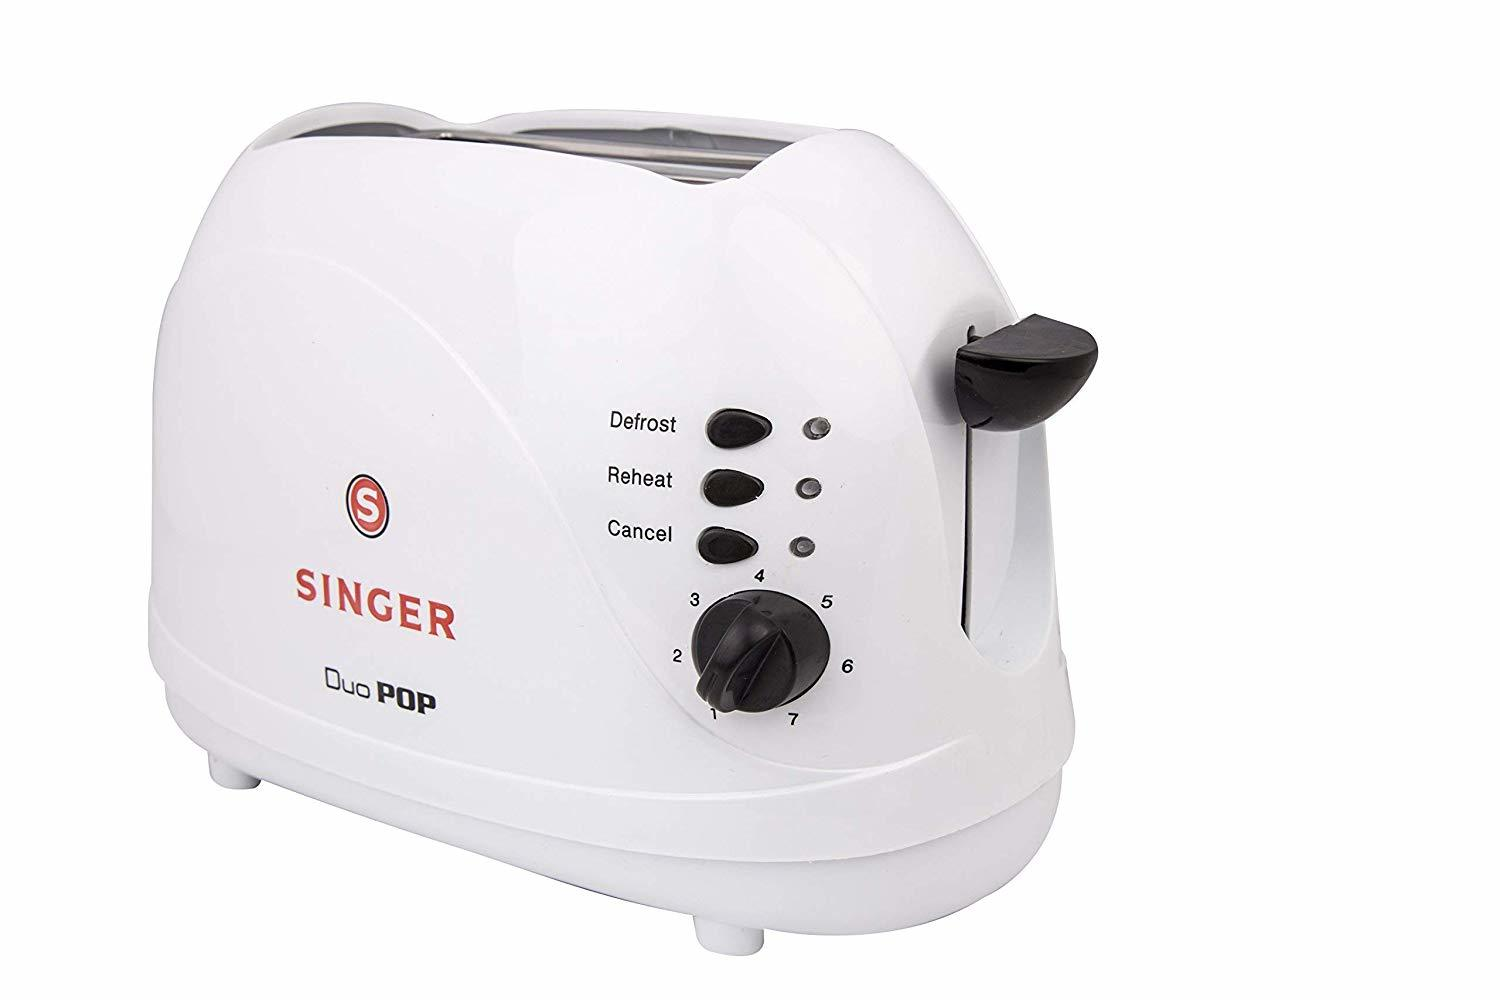 Singer Duo Pop 2 Slice 700 Watts Popup Toaster